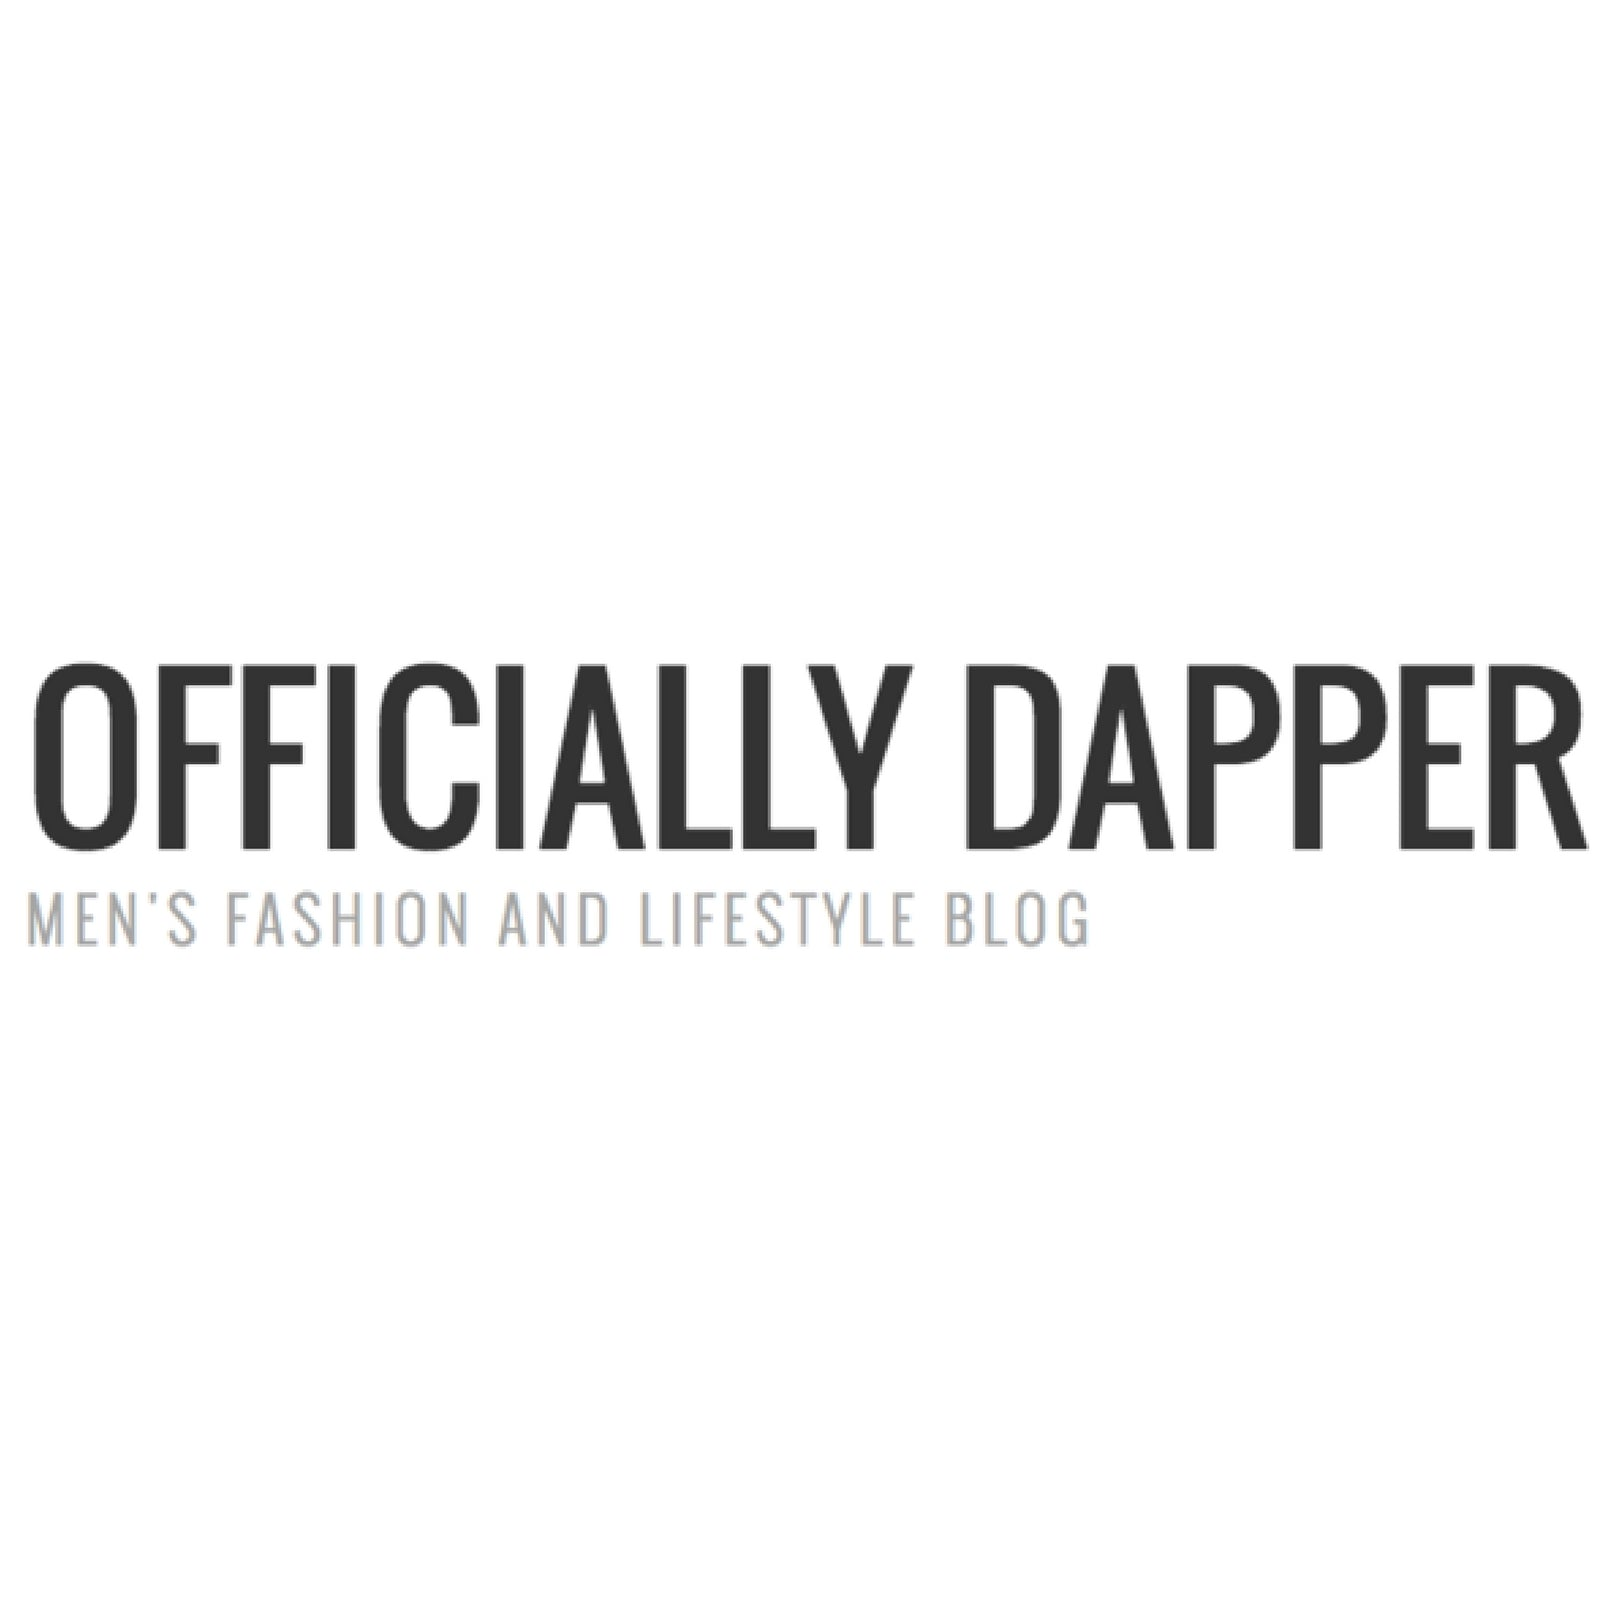 Officially Dapper